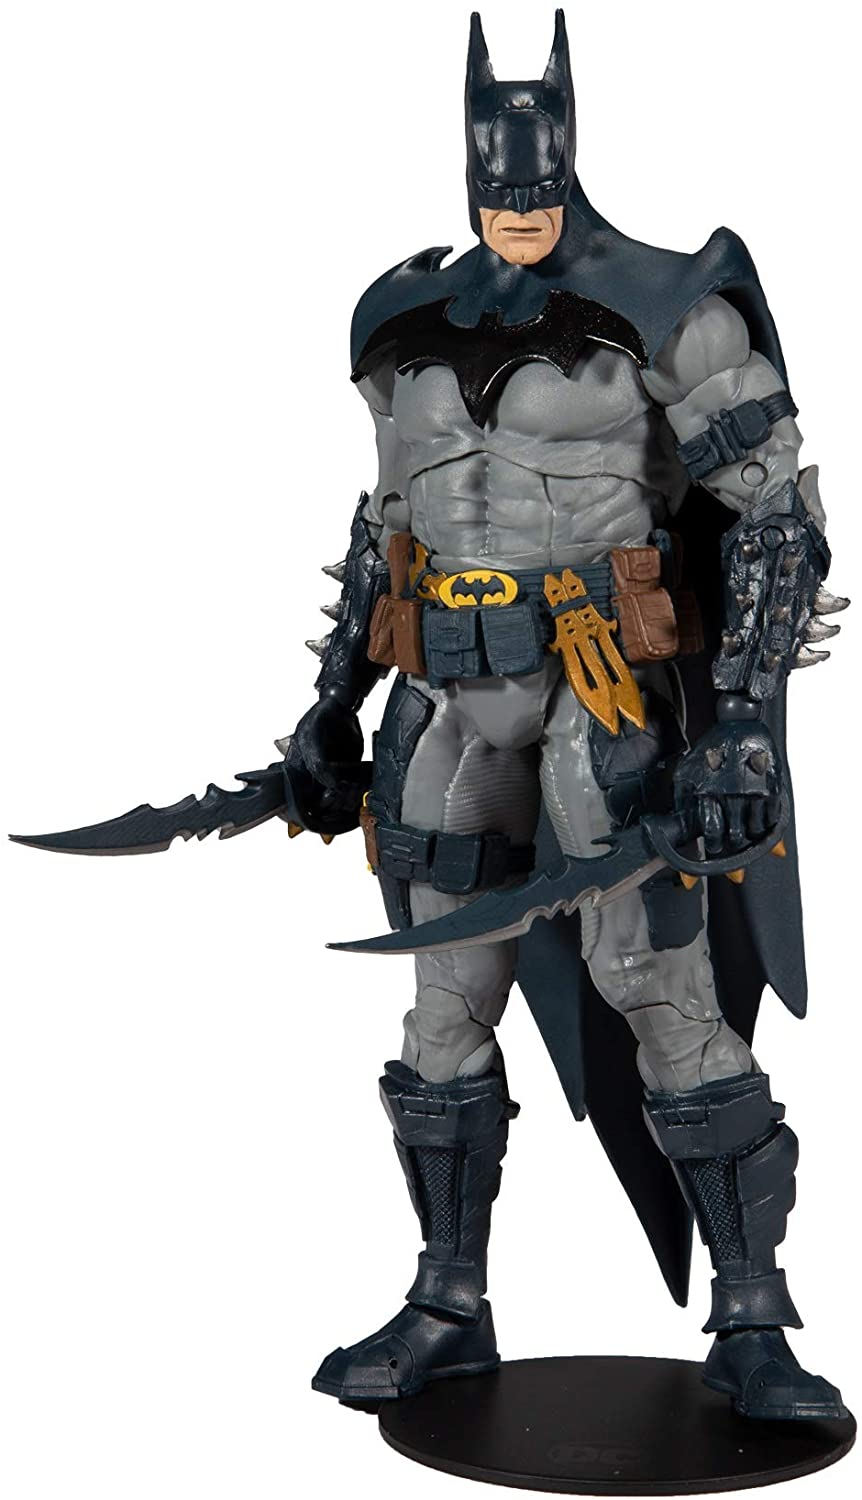 Batman (Designed by Todd McFarlane)